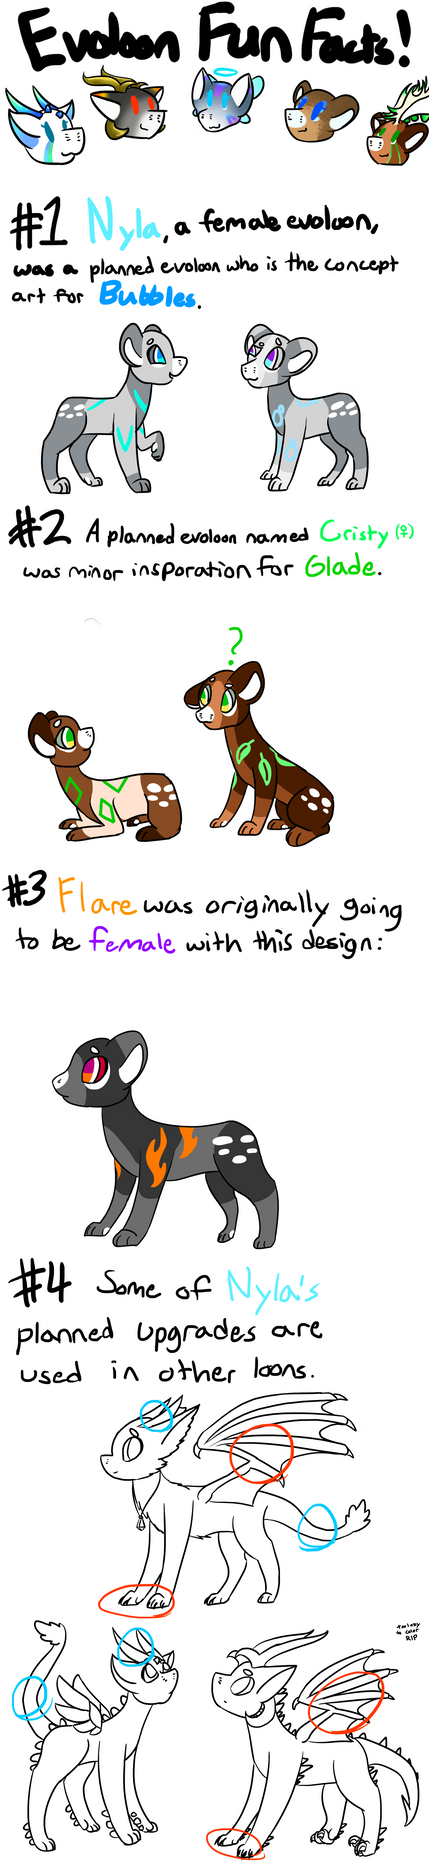 Evoloon Funfacts! by Wintercat96